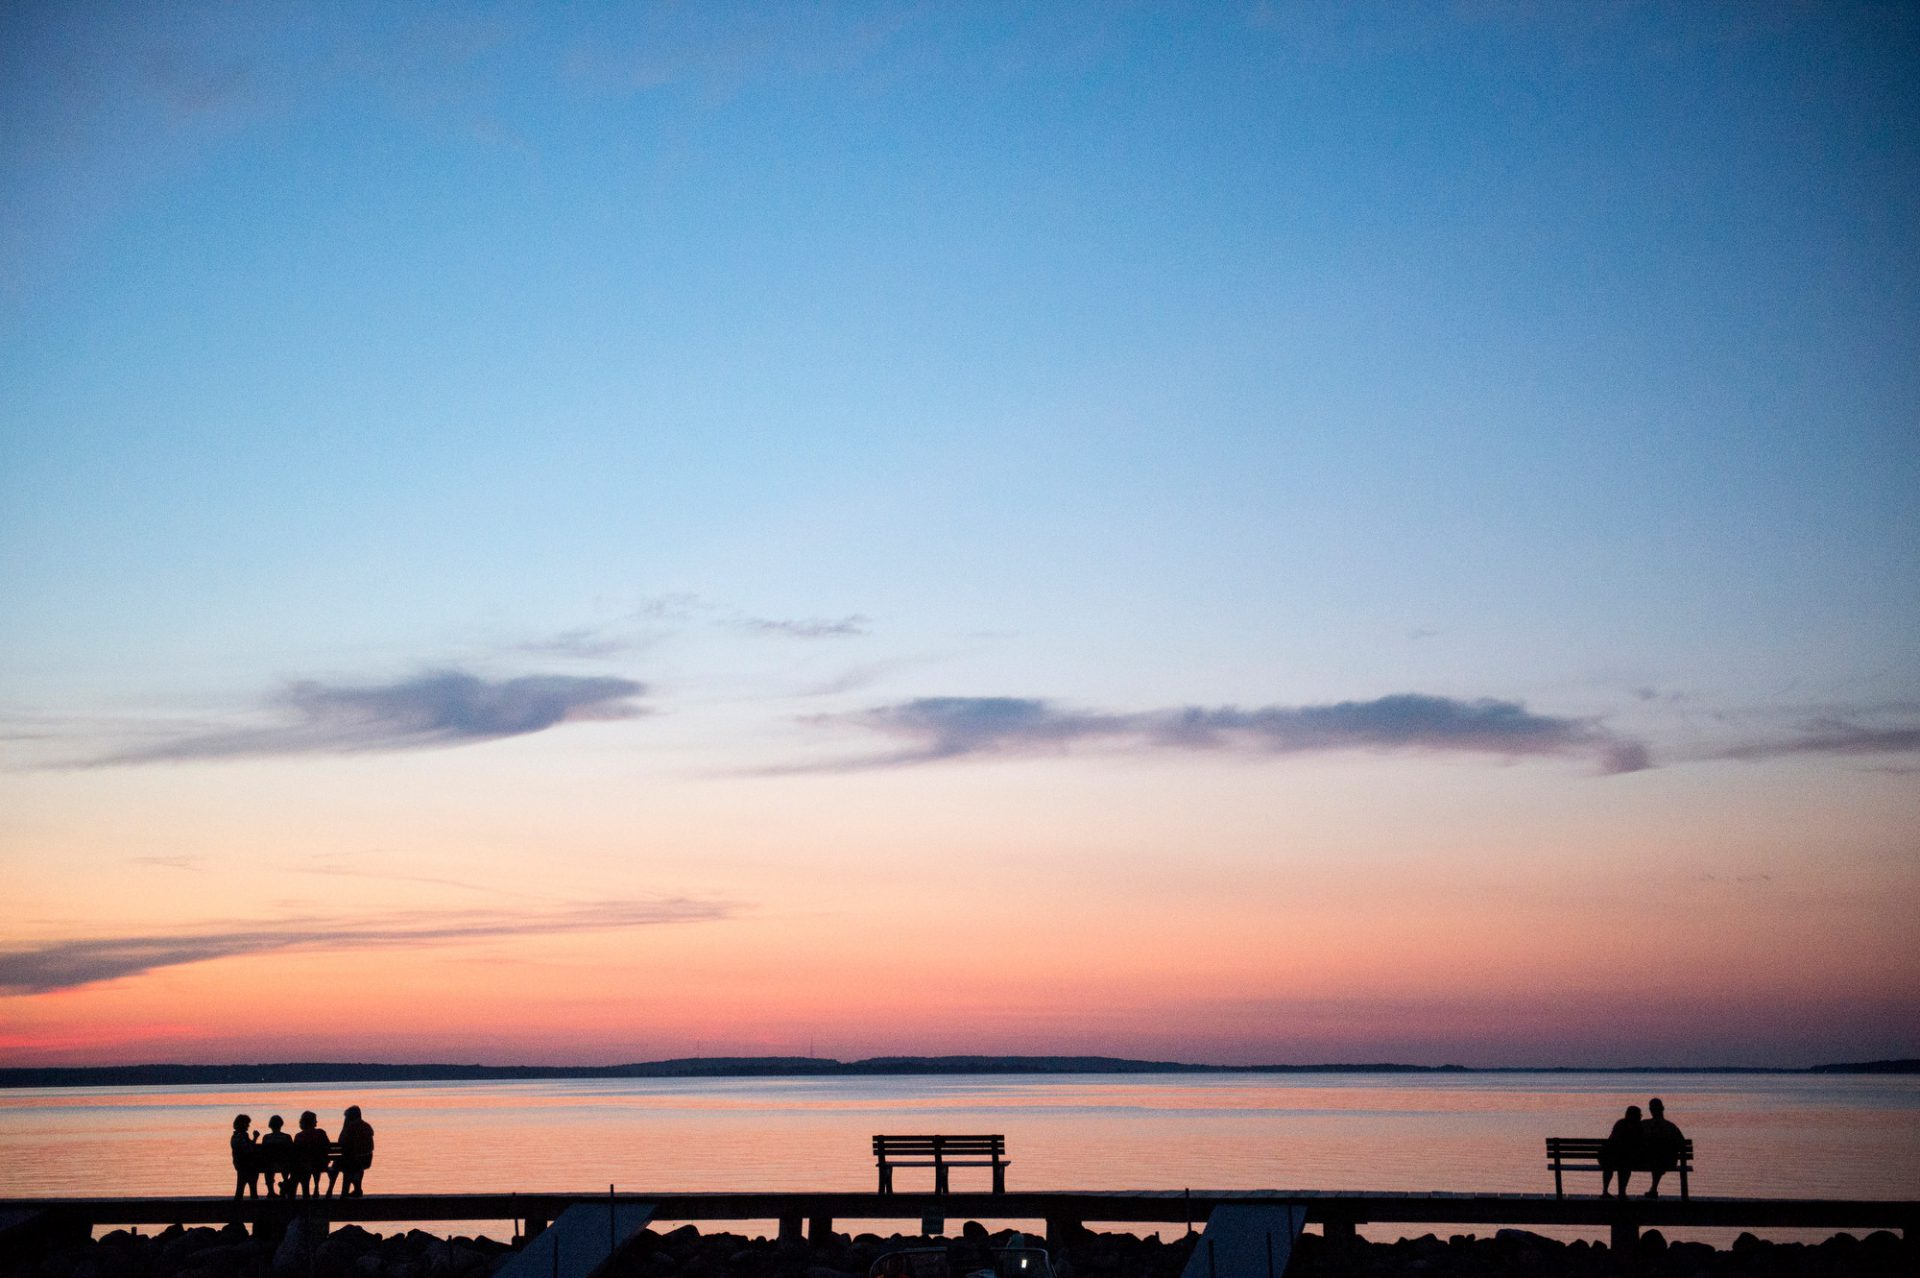 Photo: People watch the sun set at Leech Lake, Minnesota.